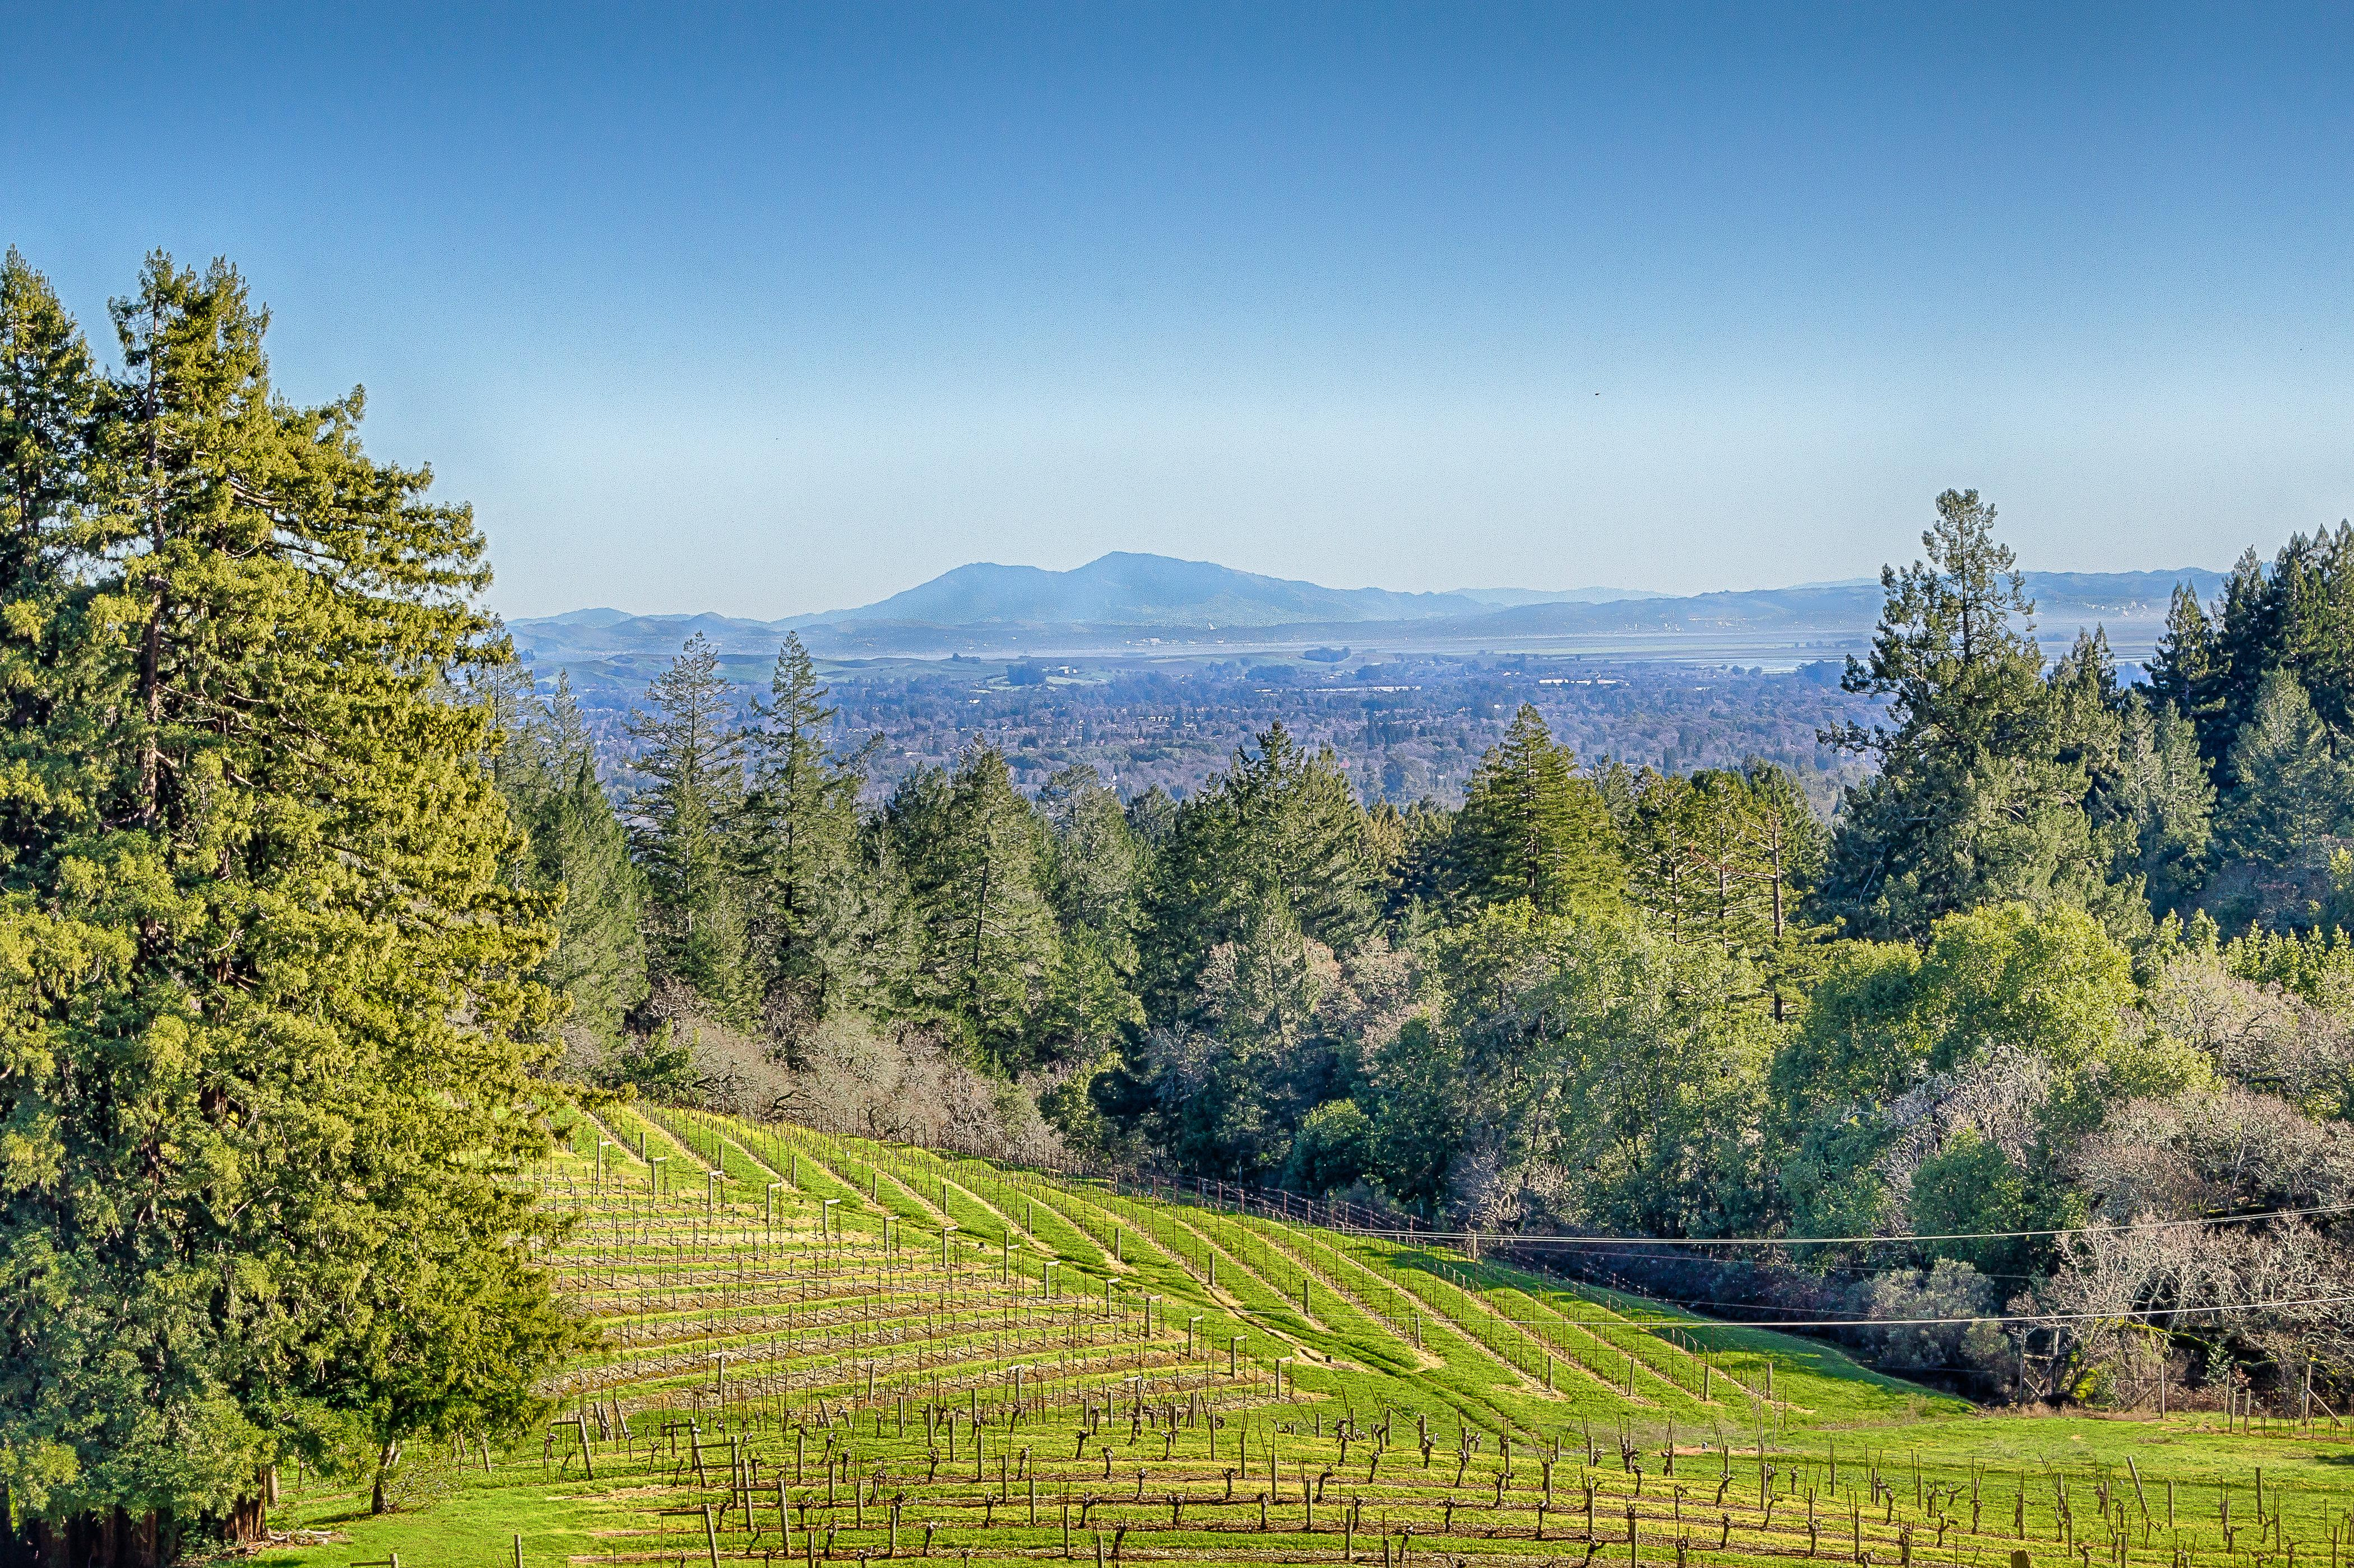 Walk down the road to take in stunning views of Sonoma.